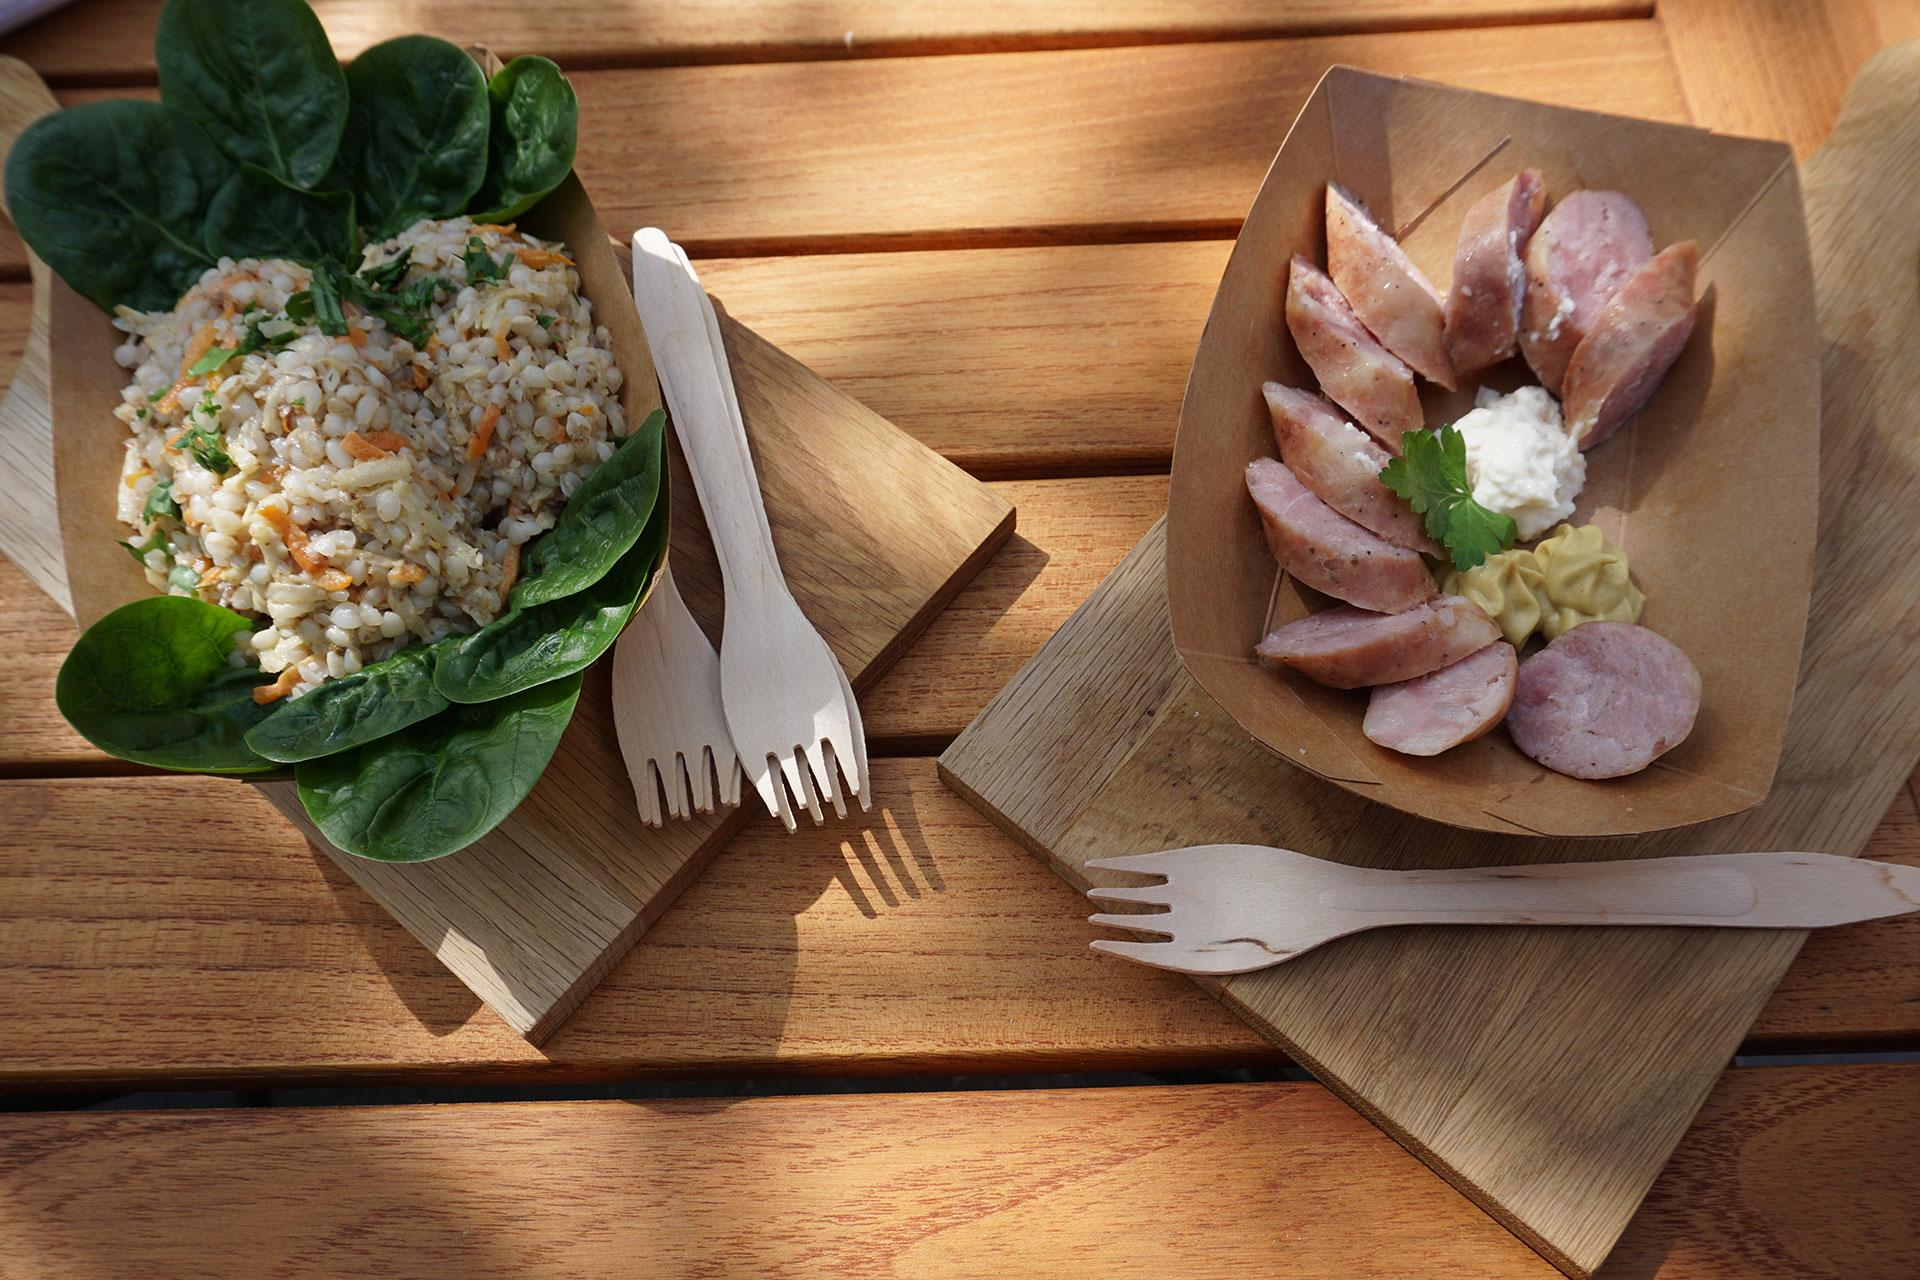 Two delicious plates with food on a wooden table in Ljubljana